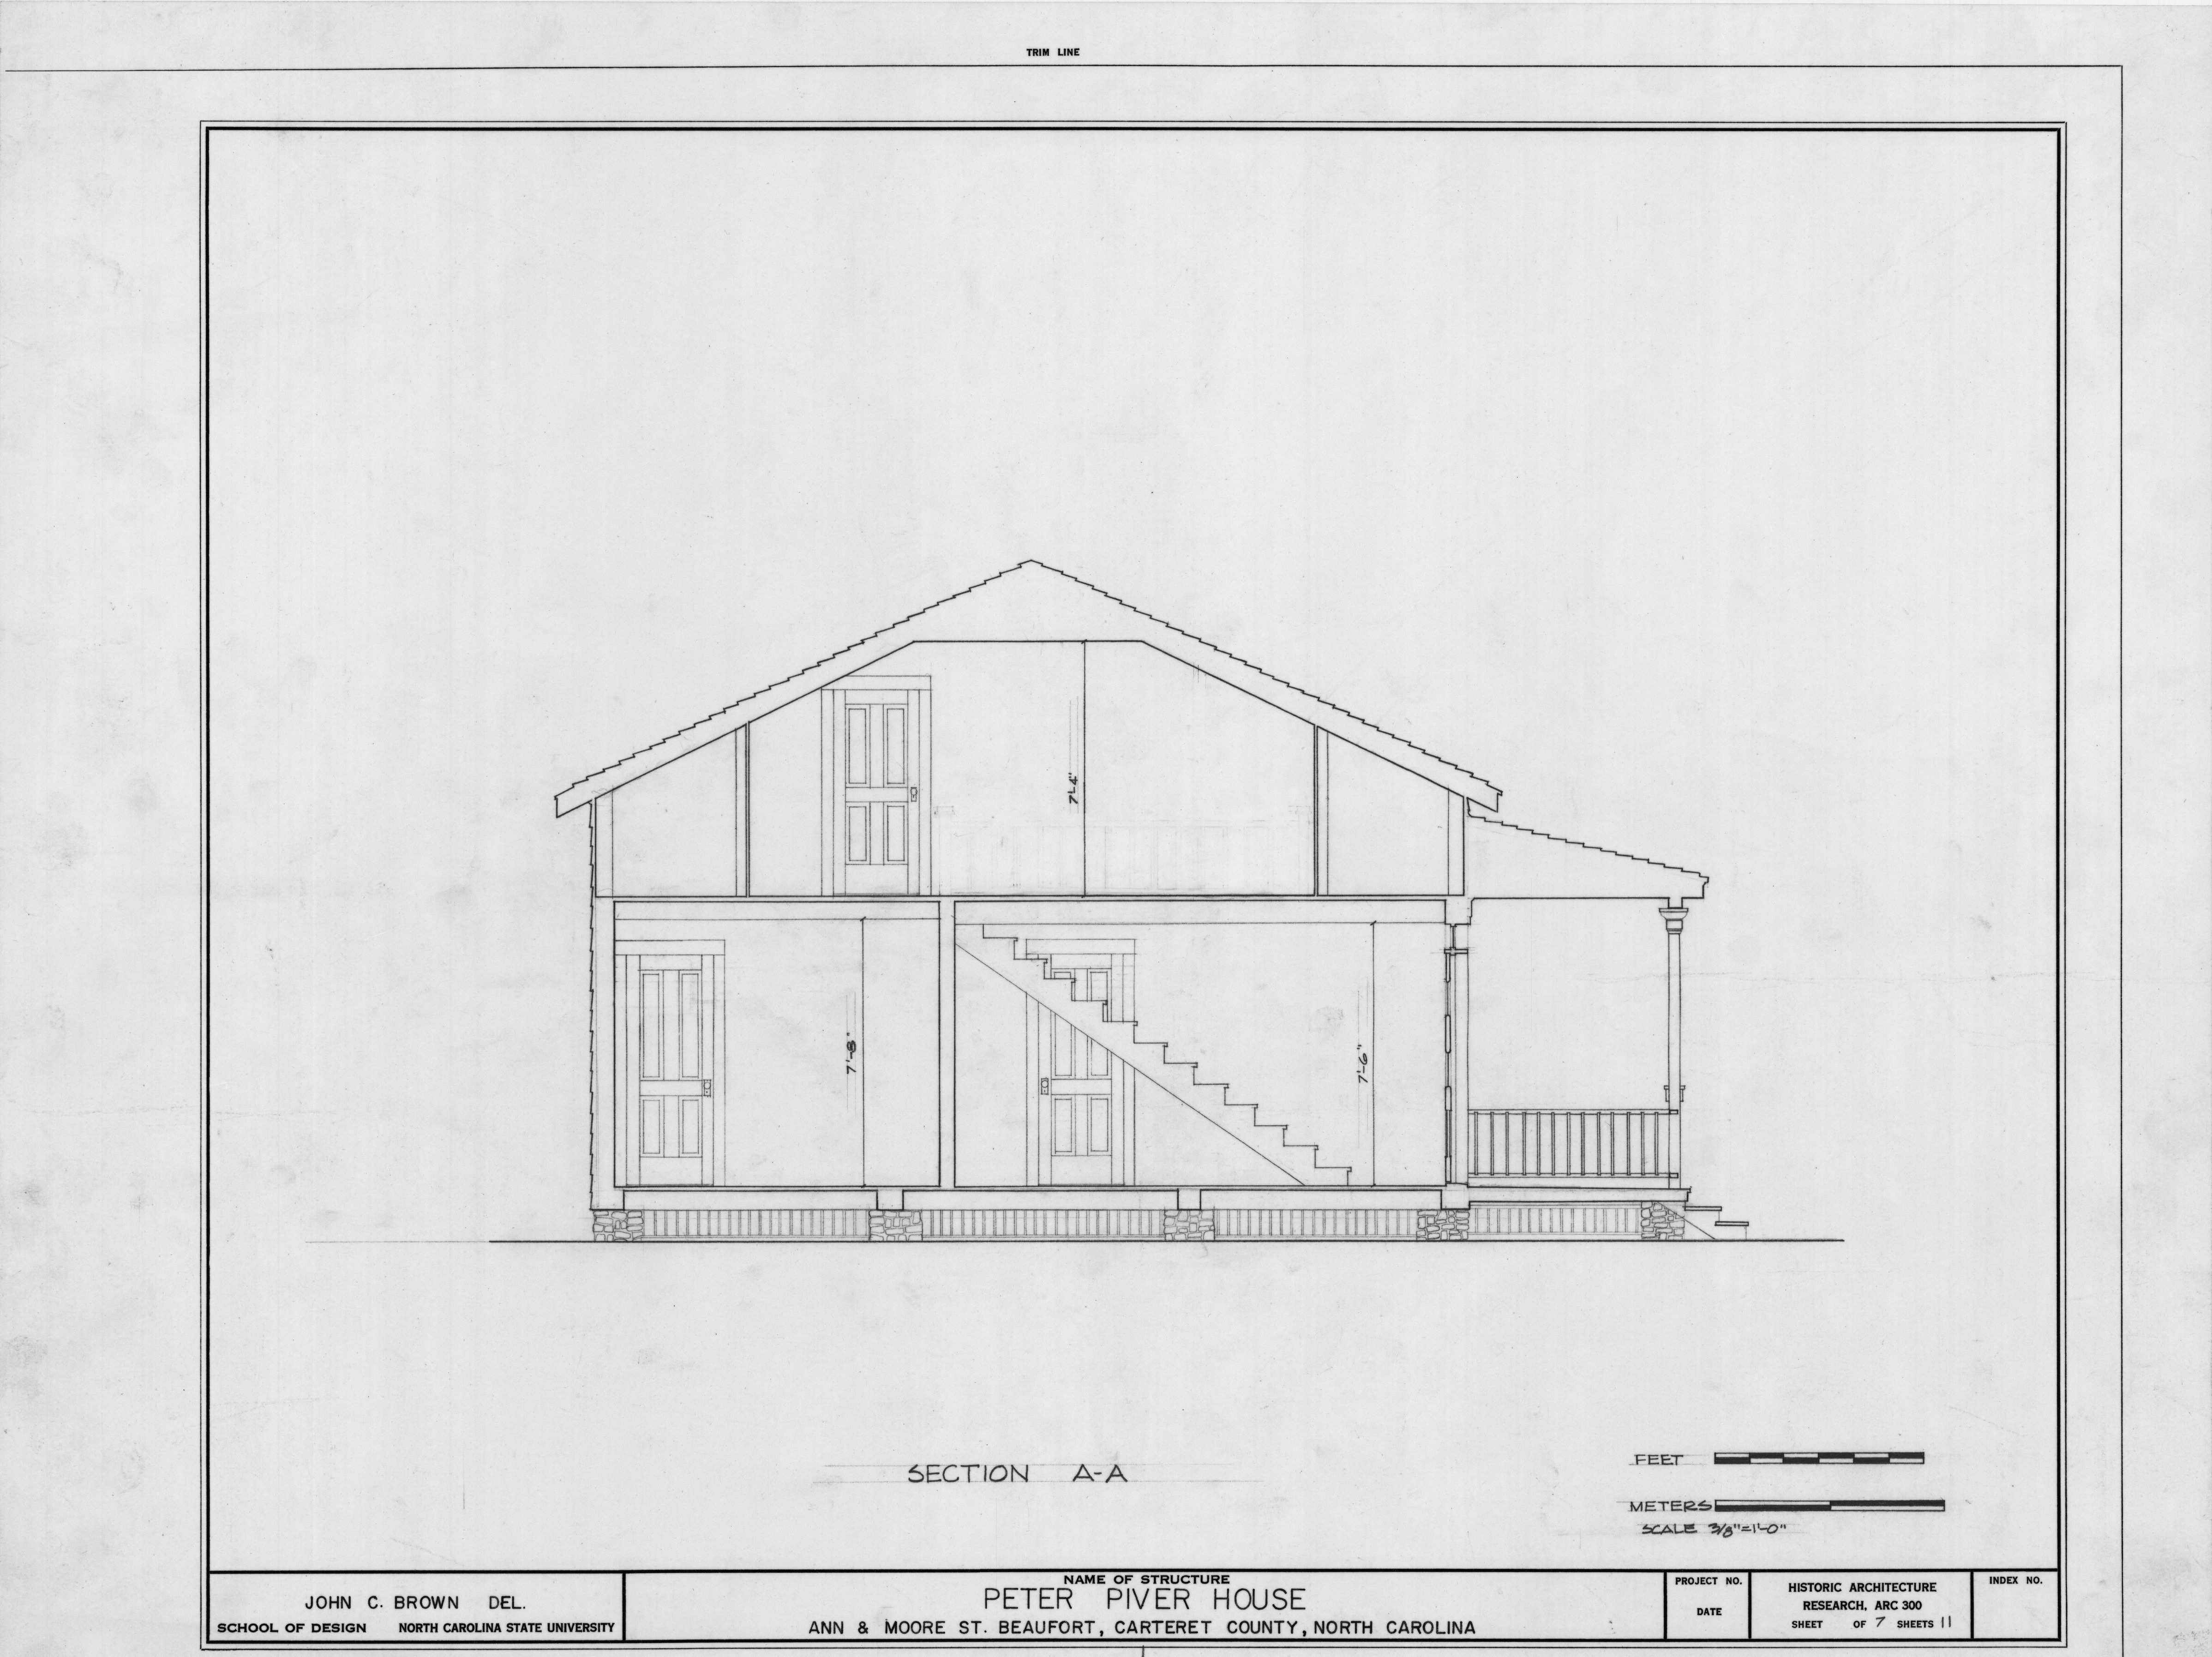 Cross section, Peter Piver House, Beaufort, North Carolina